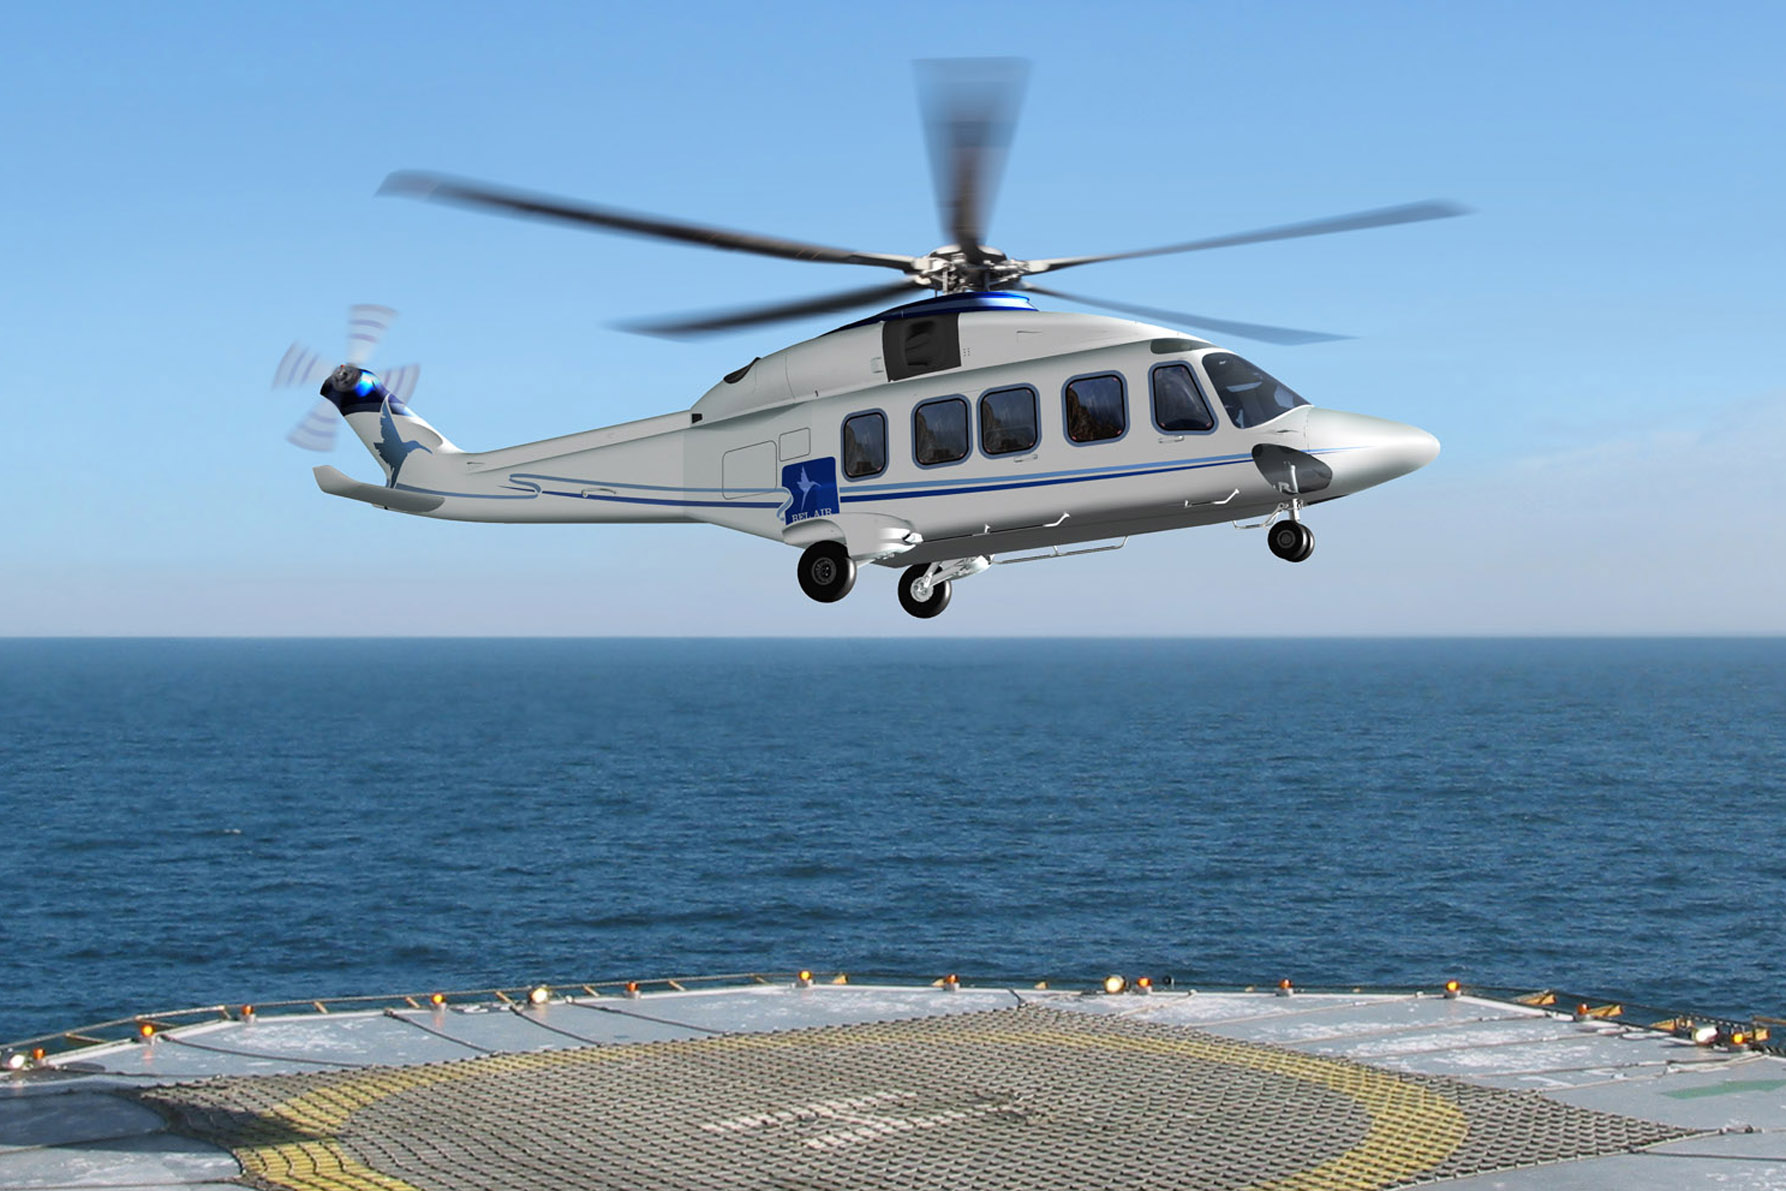 Two AW189 helicopters for Bel Air